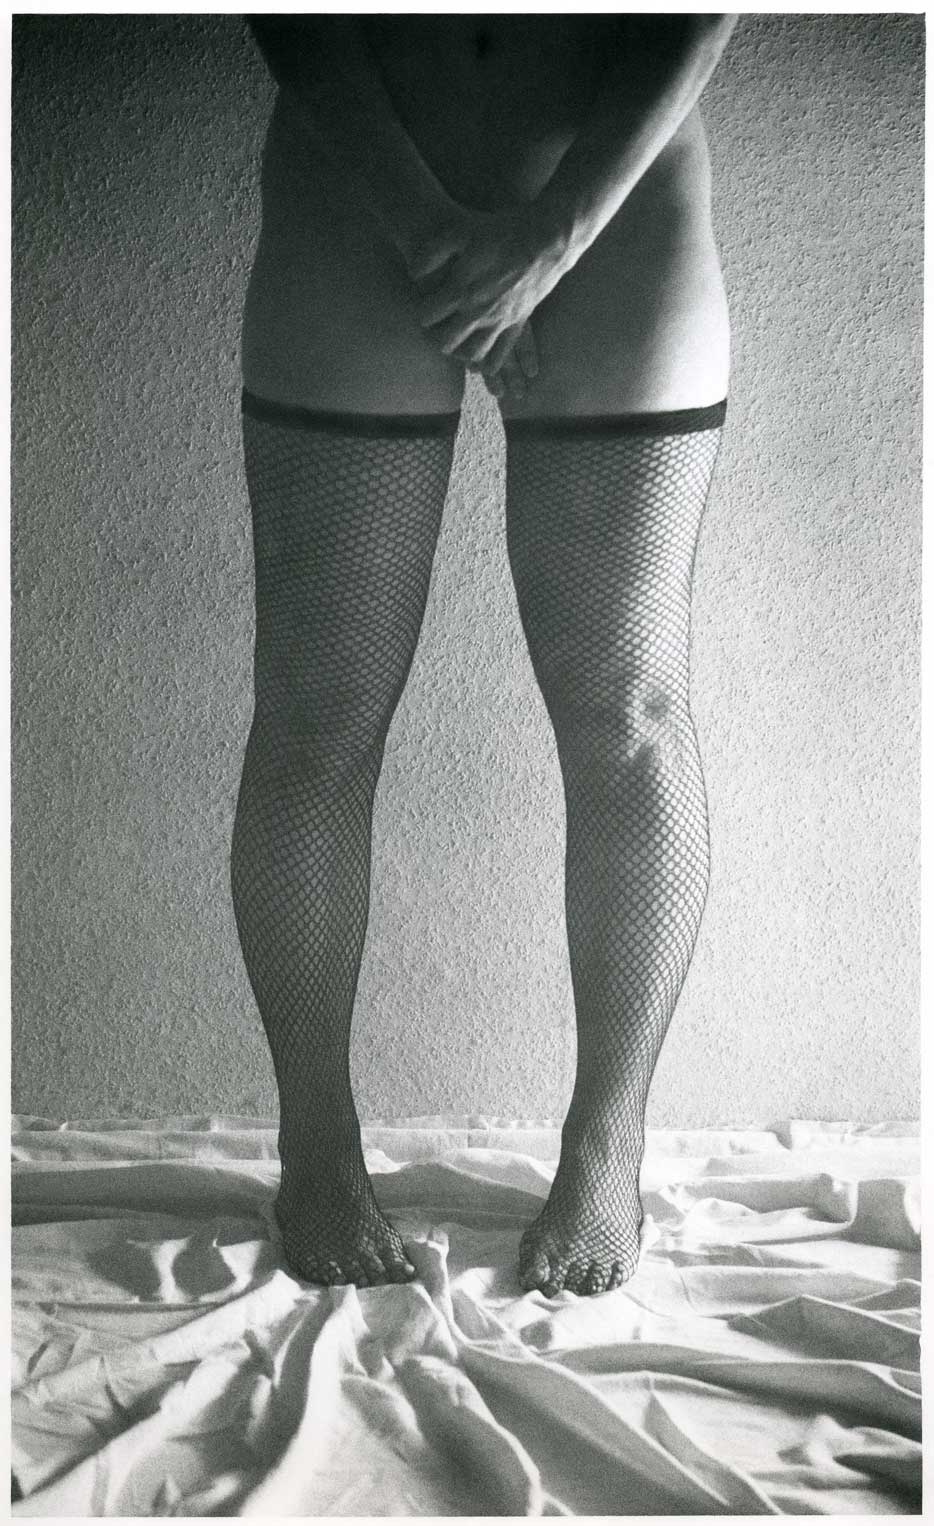 Violeta Bubelytė, Nude 79, 1996. From the MO Museum collection